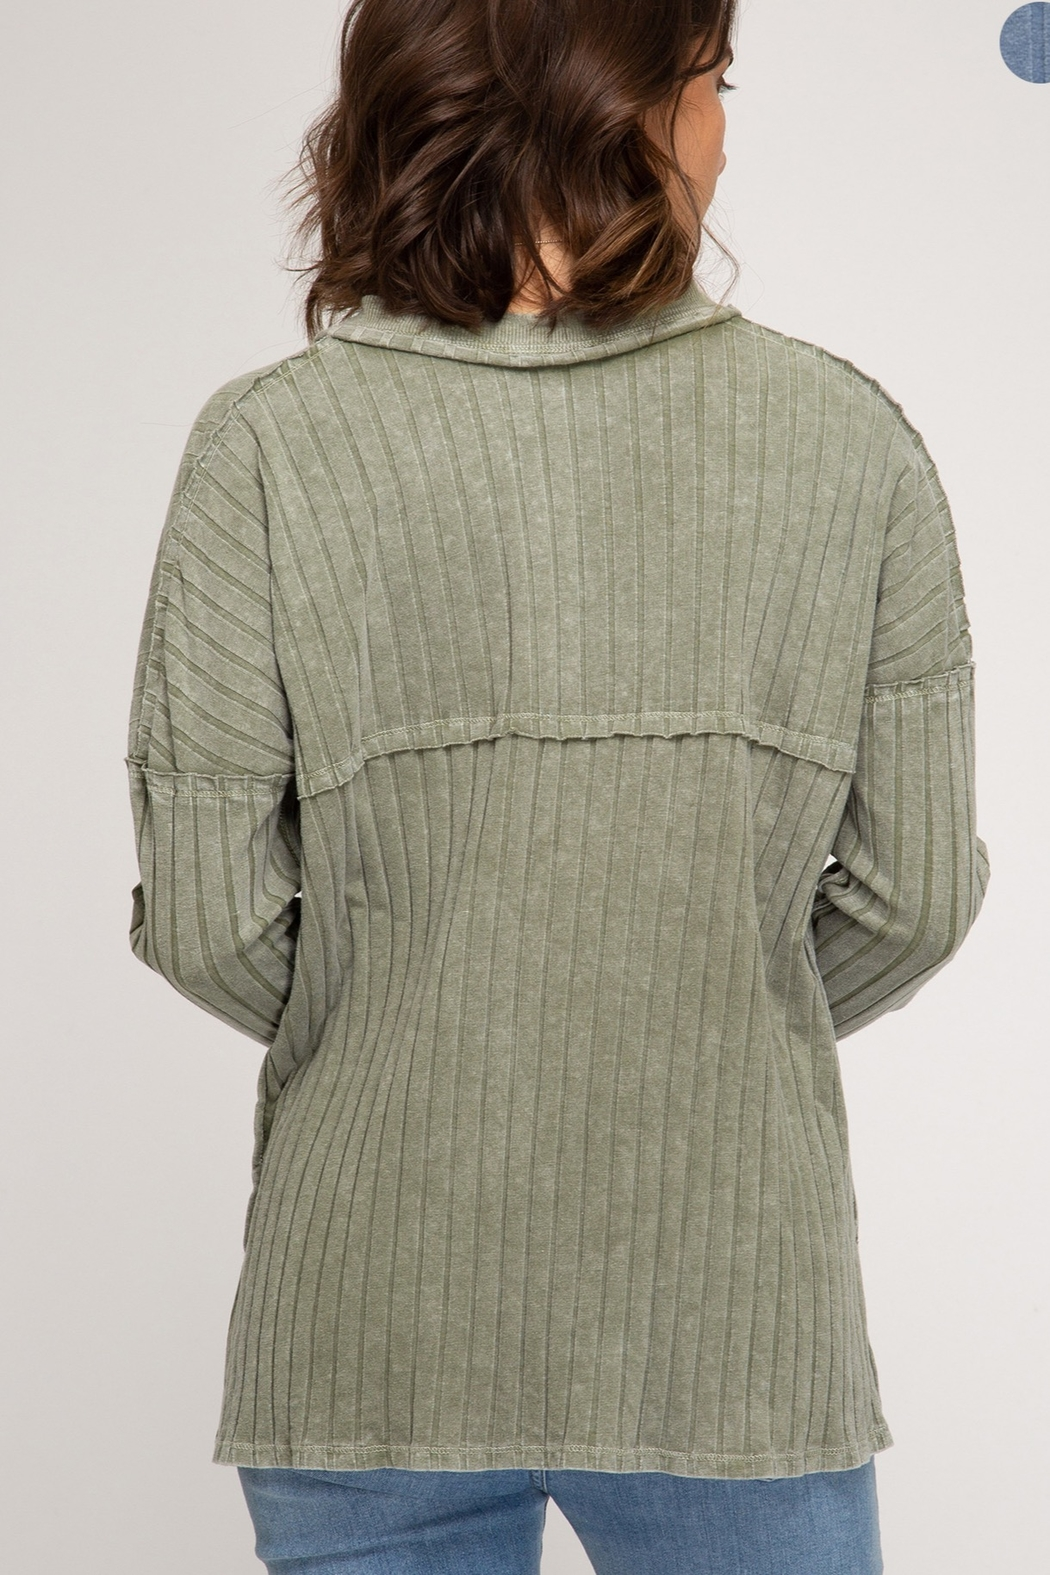 She and Sky LONG SLEEVE RIB KNIT TOP WITH FRONT BUTTON PLACKET DETAIL - Side Cropped Image